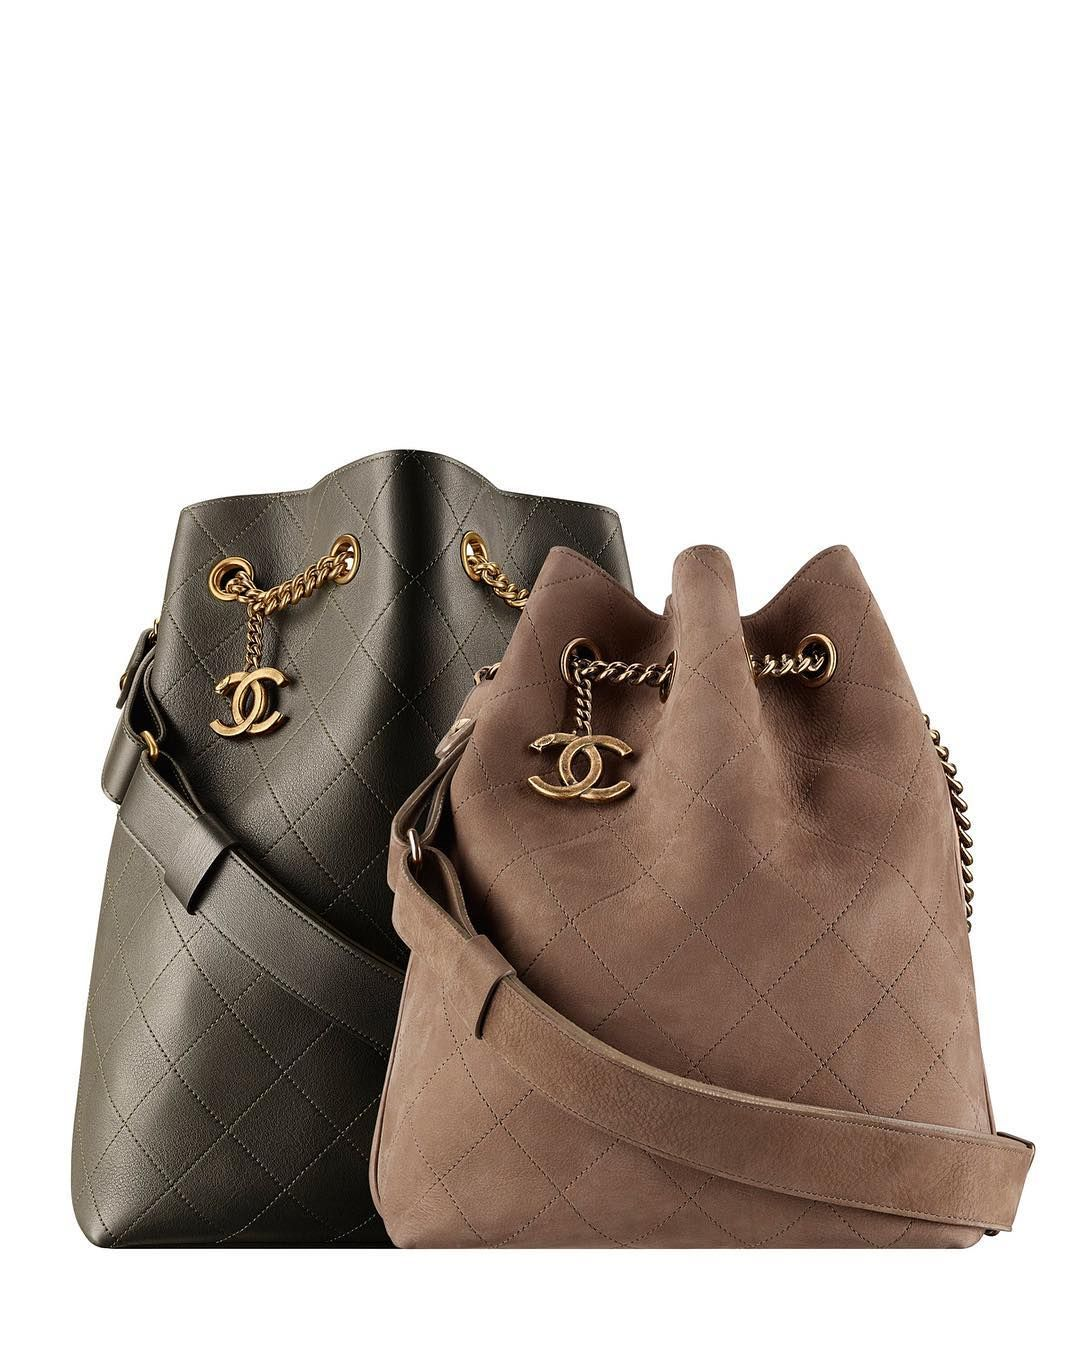 eb7ccfacf04a 2016 newest collection Chanel ultra solf smooth calfskin leather bucket bag  and suede drawstring bag